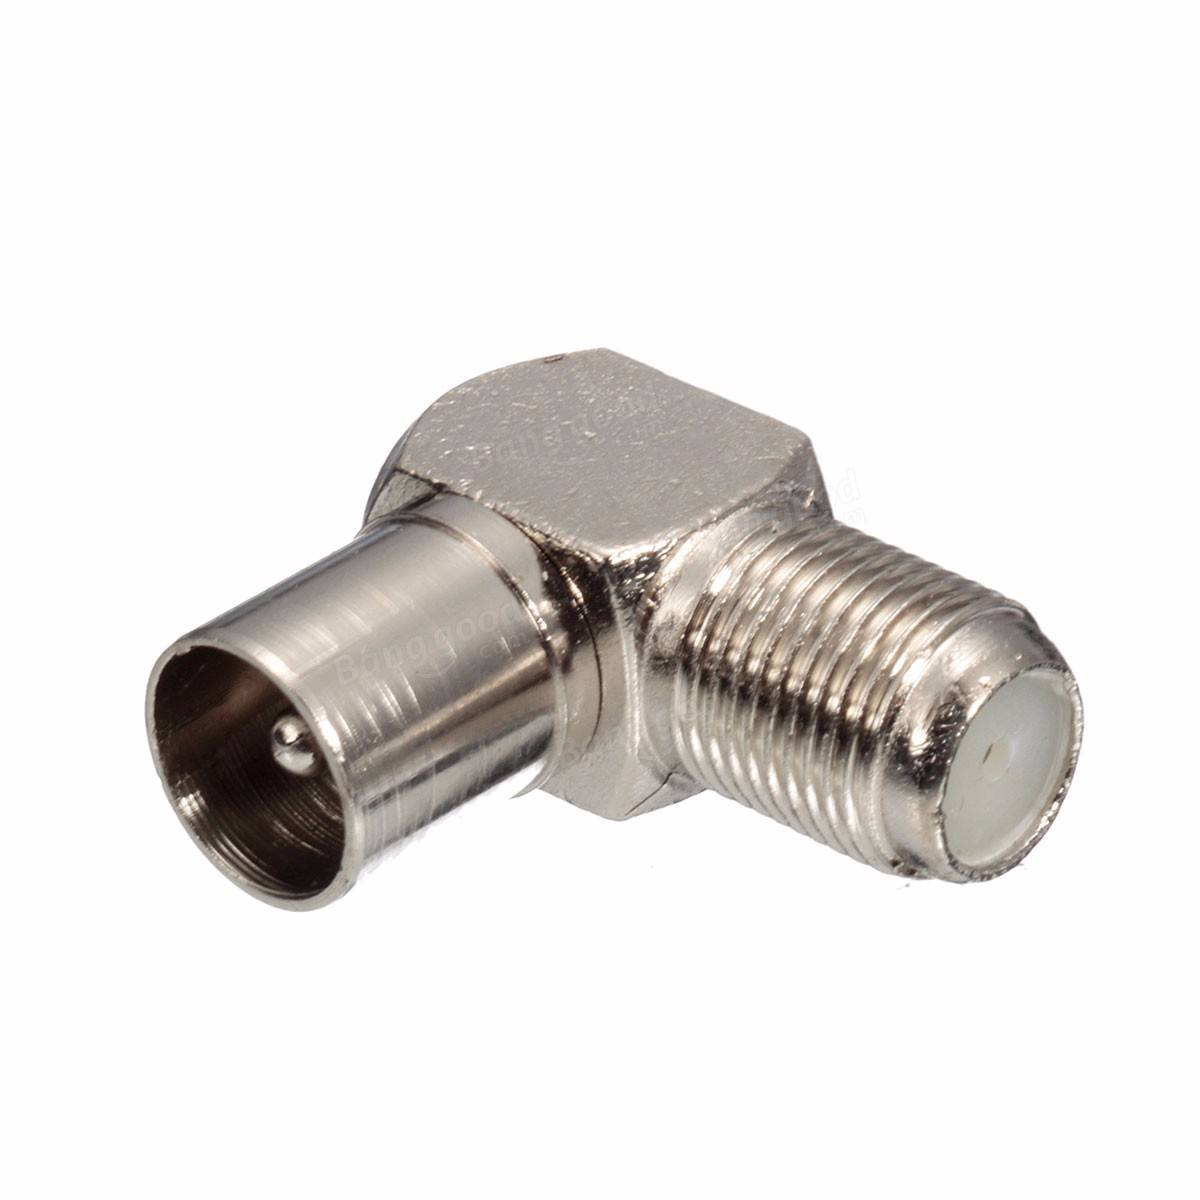 Cable Tv Coax Cable : Degree right angled tv plug coax coaxial f connector